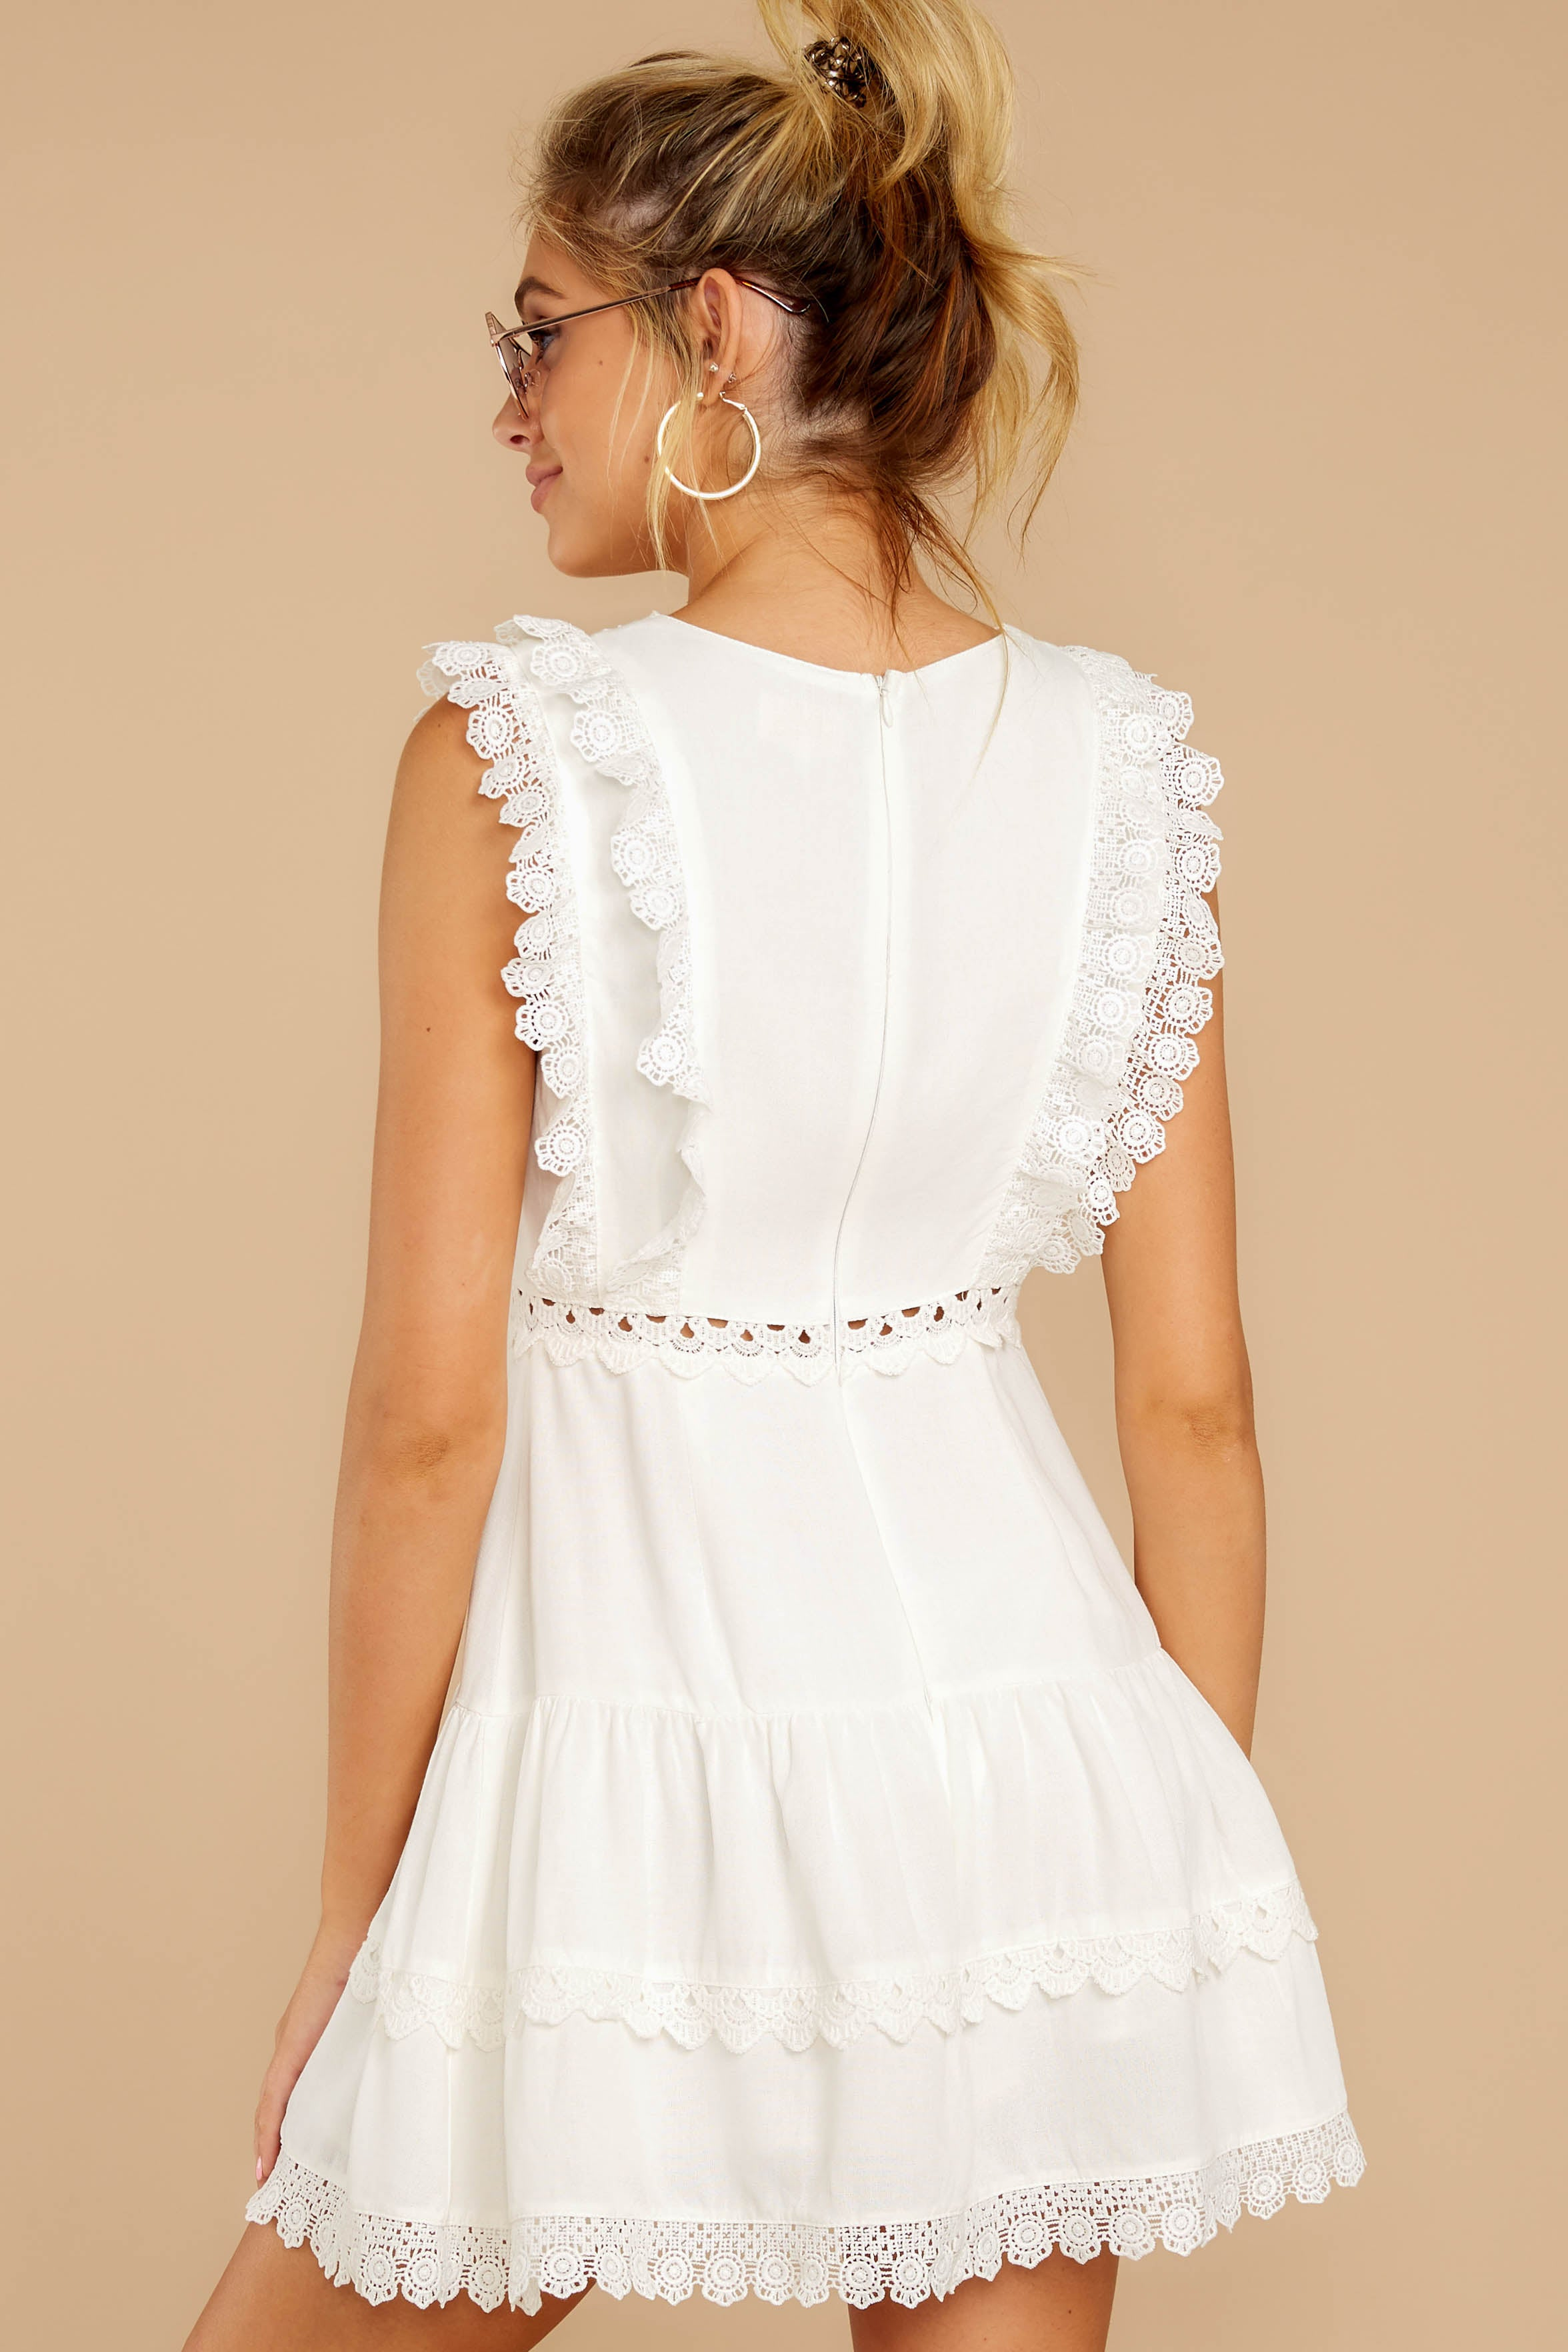 7 Looking For More White Dress at reddress.com